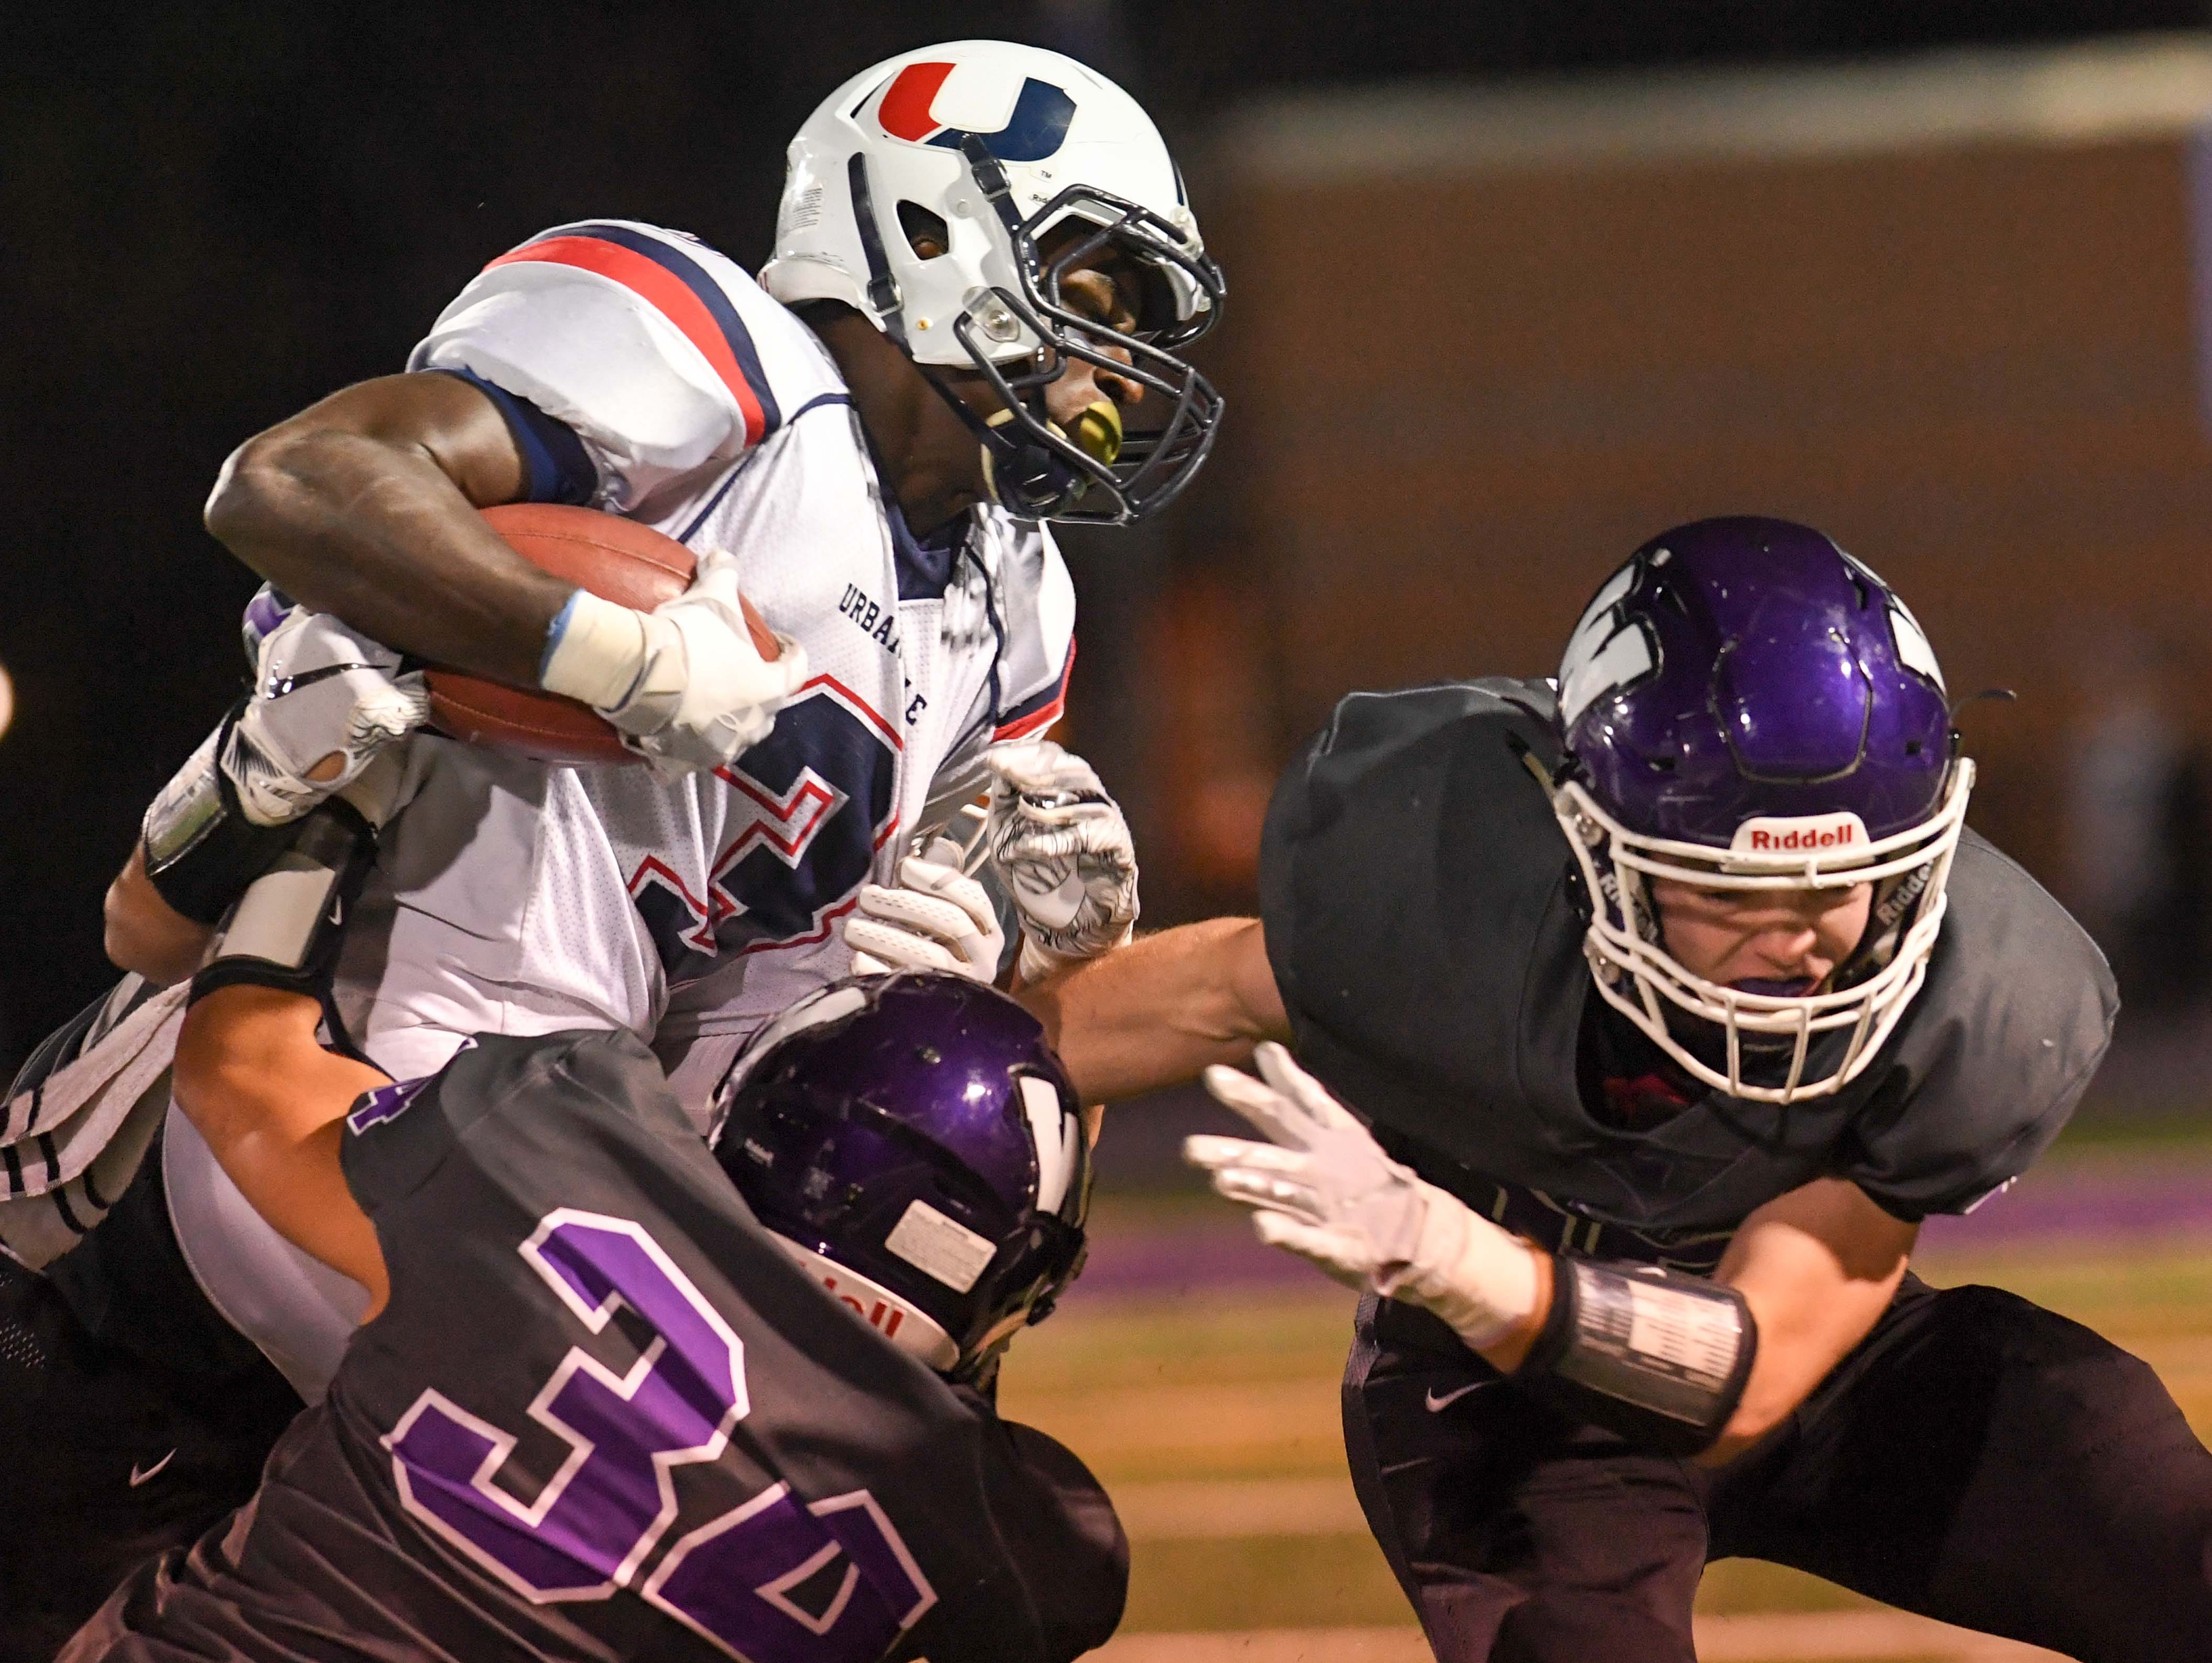 Urbandale's Harrison Waylee (3) battles down field against  Waukee defenders on Friday, Oct. 26, 2018 during a playoff game between the Waukee Warriors and the Urbandale J-Hawks at Waukee High School.